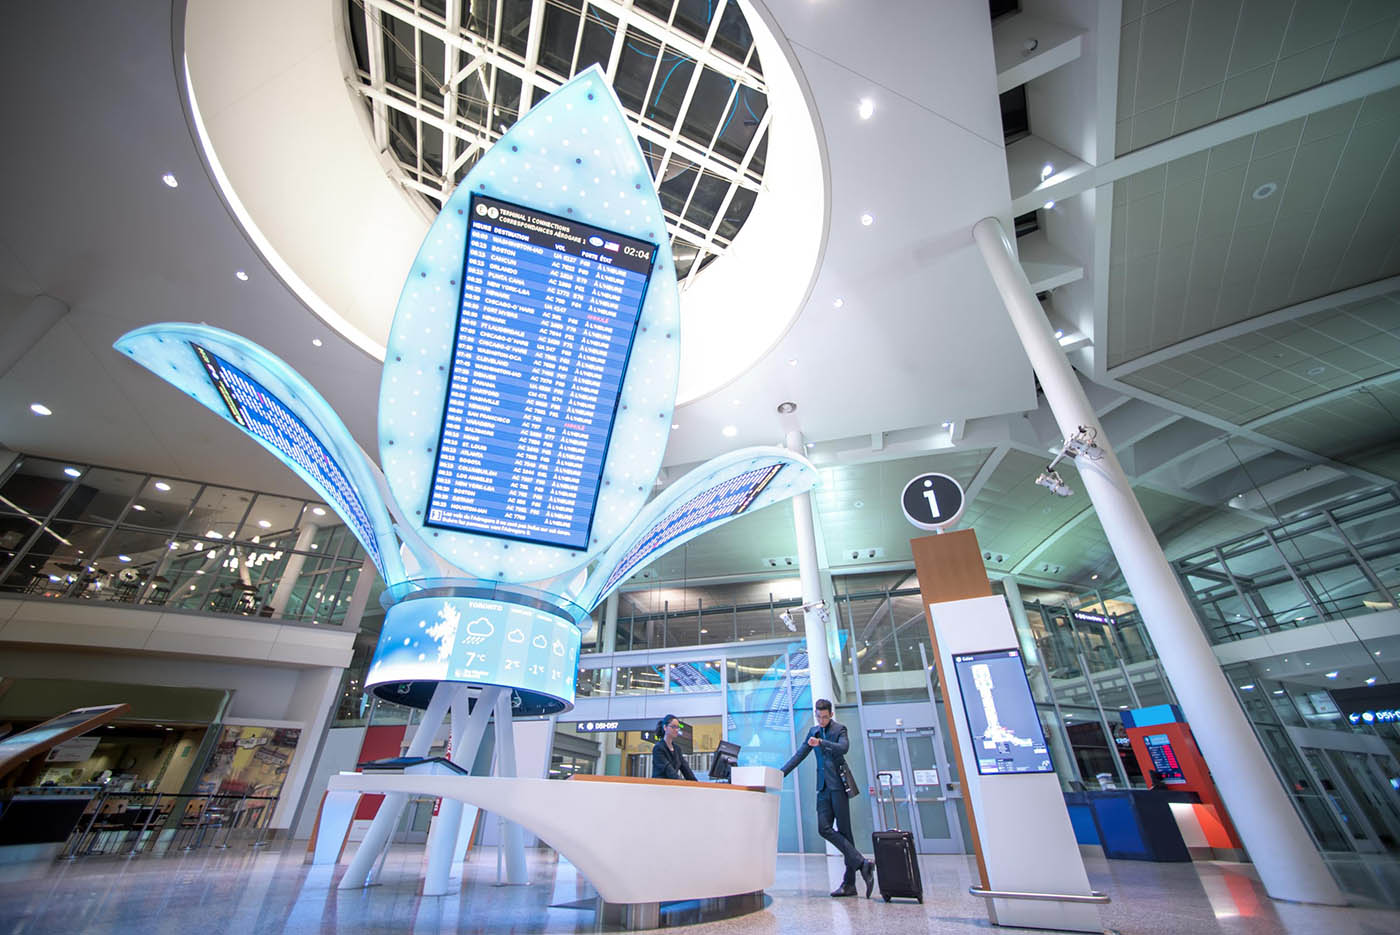 Case Study: Toronto Pearson Airport Blends Artistry Into the Travel Experience